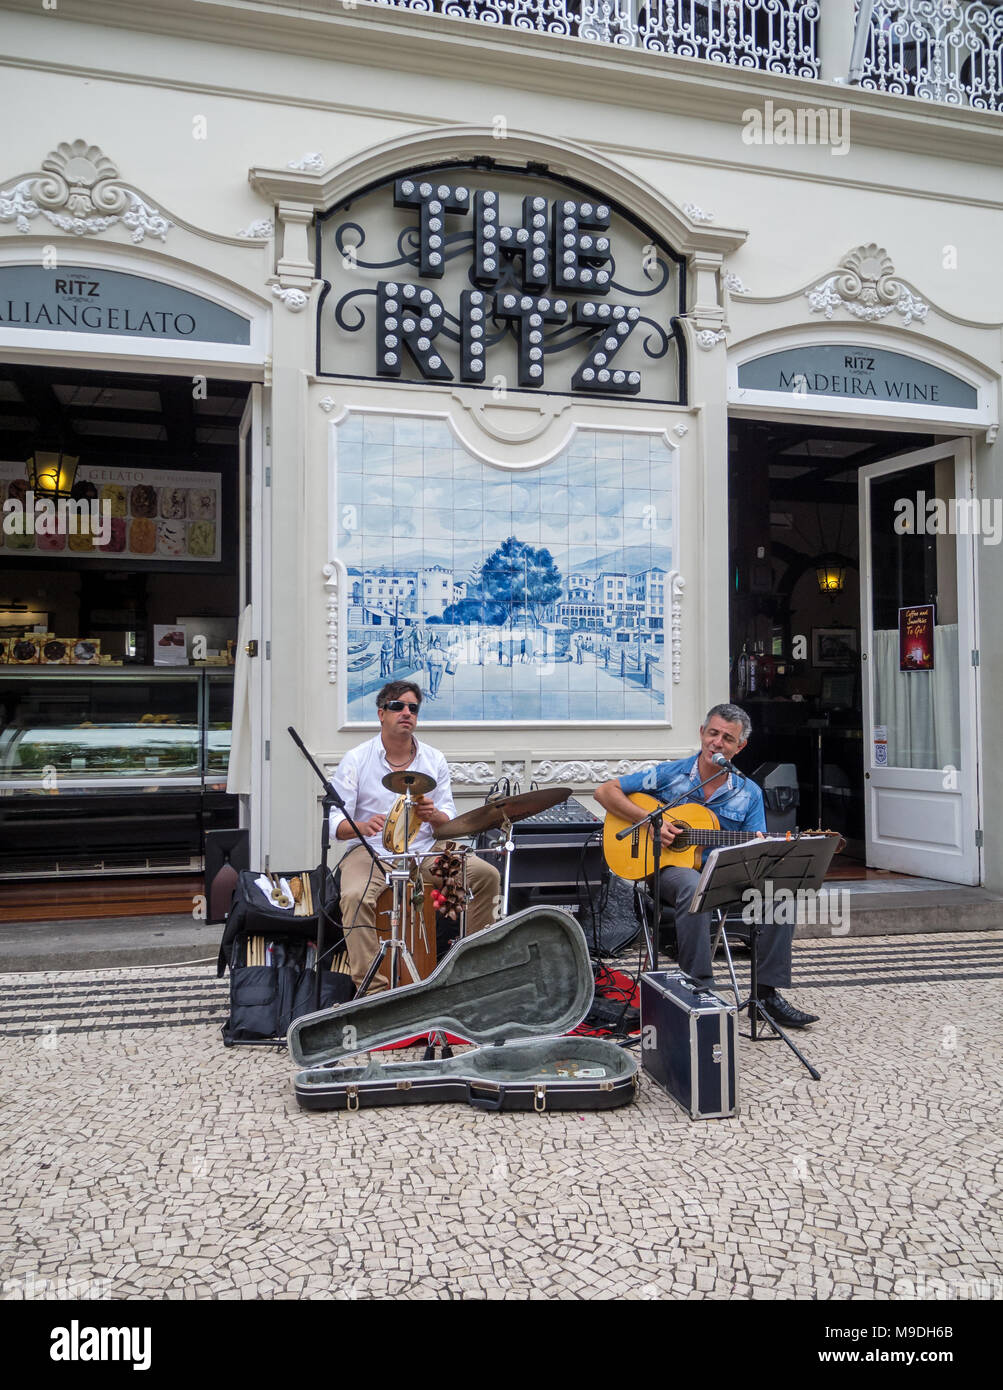 Musicians entertaining diners outside the famous Ritz Cafe, Funchal, Madeira - Stock Image